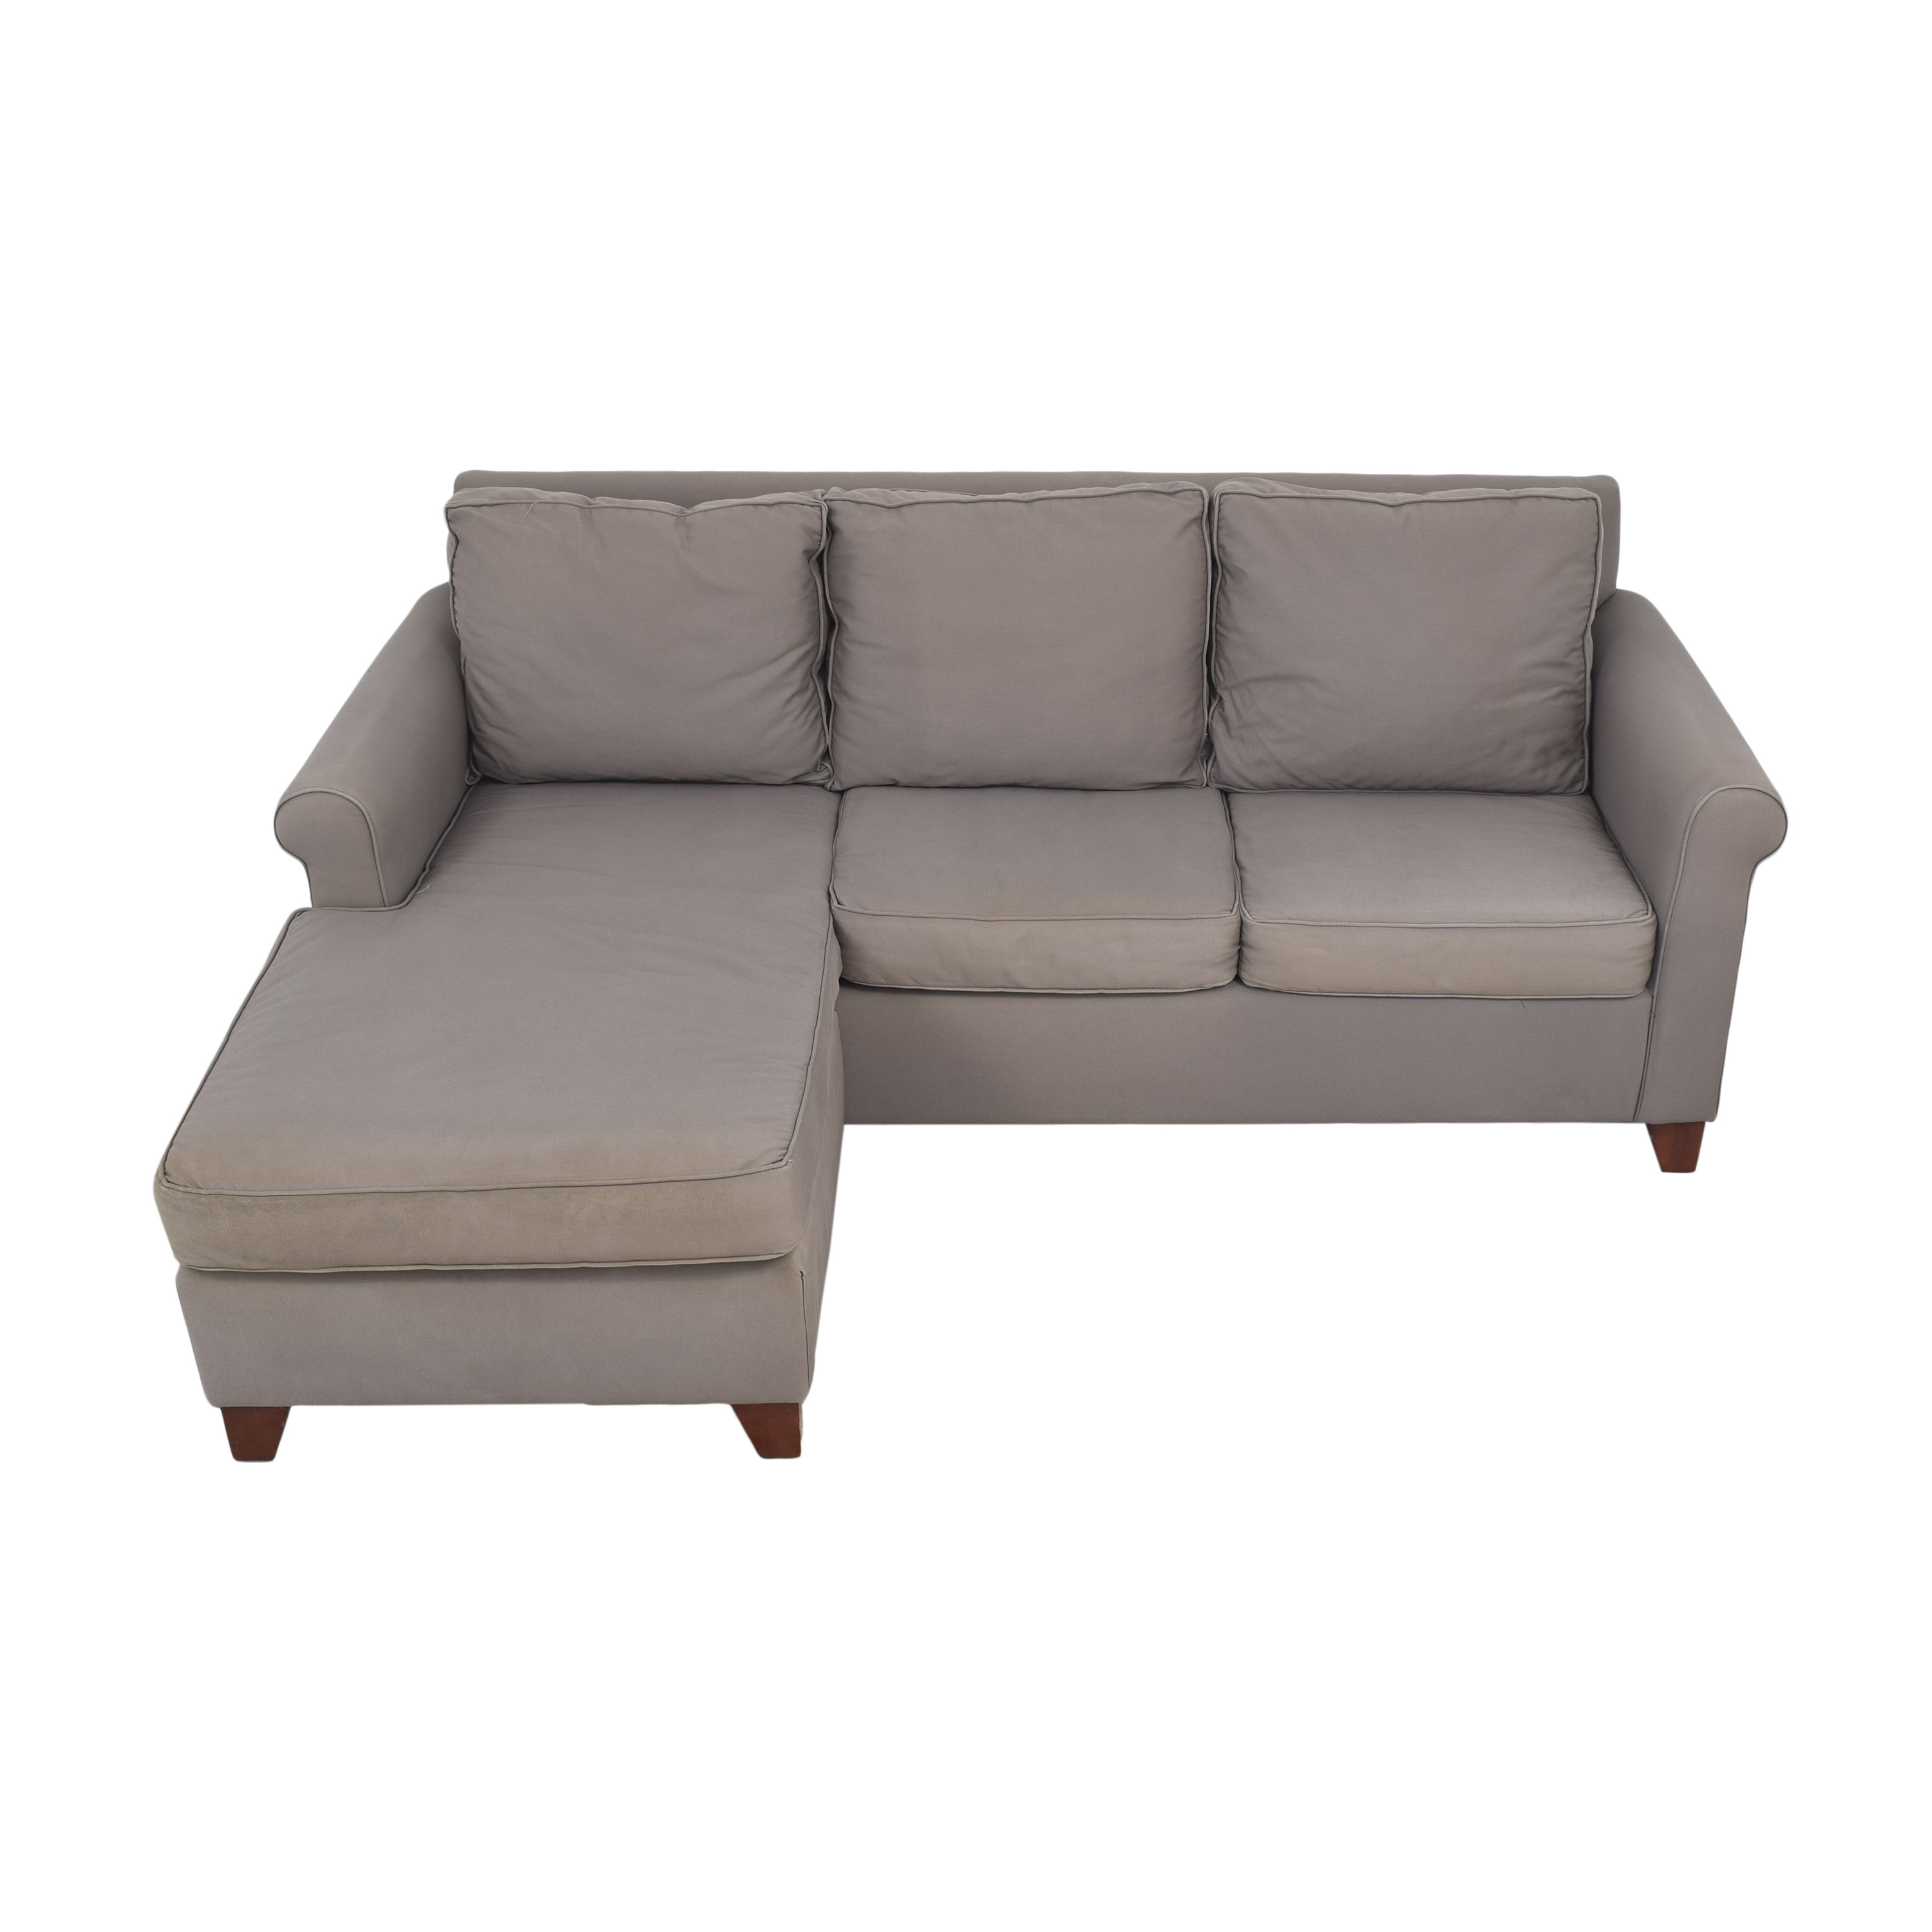 Pottery Barn Pottery Barn Cameron Sectional Sofa with Reversible Chaise nj